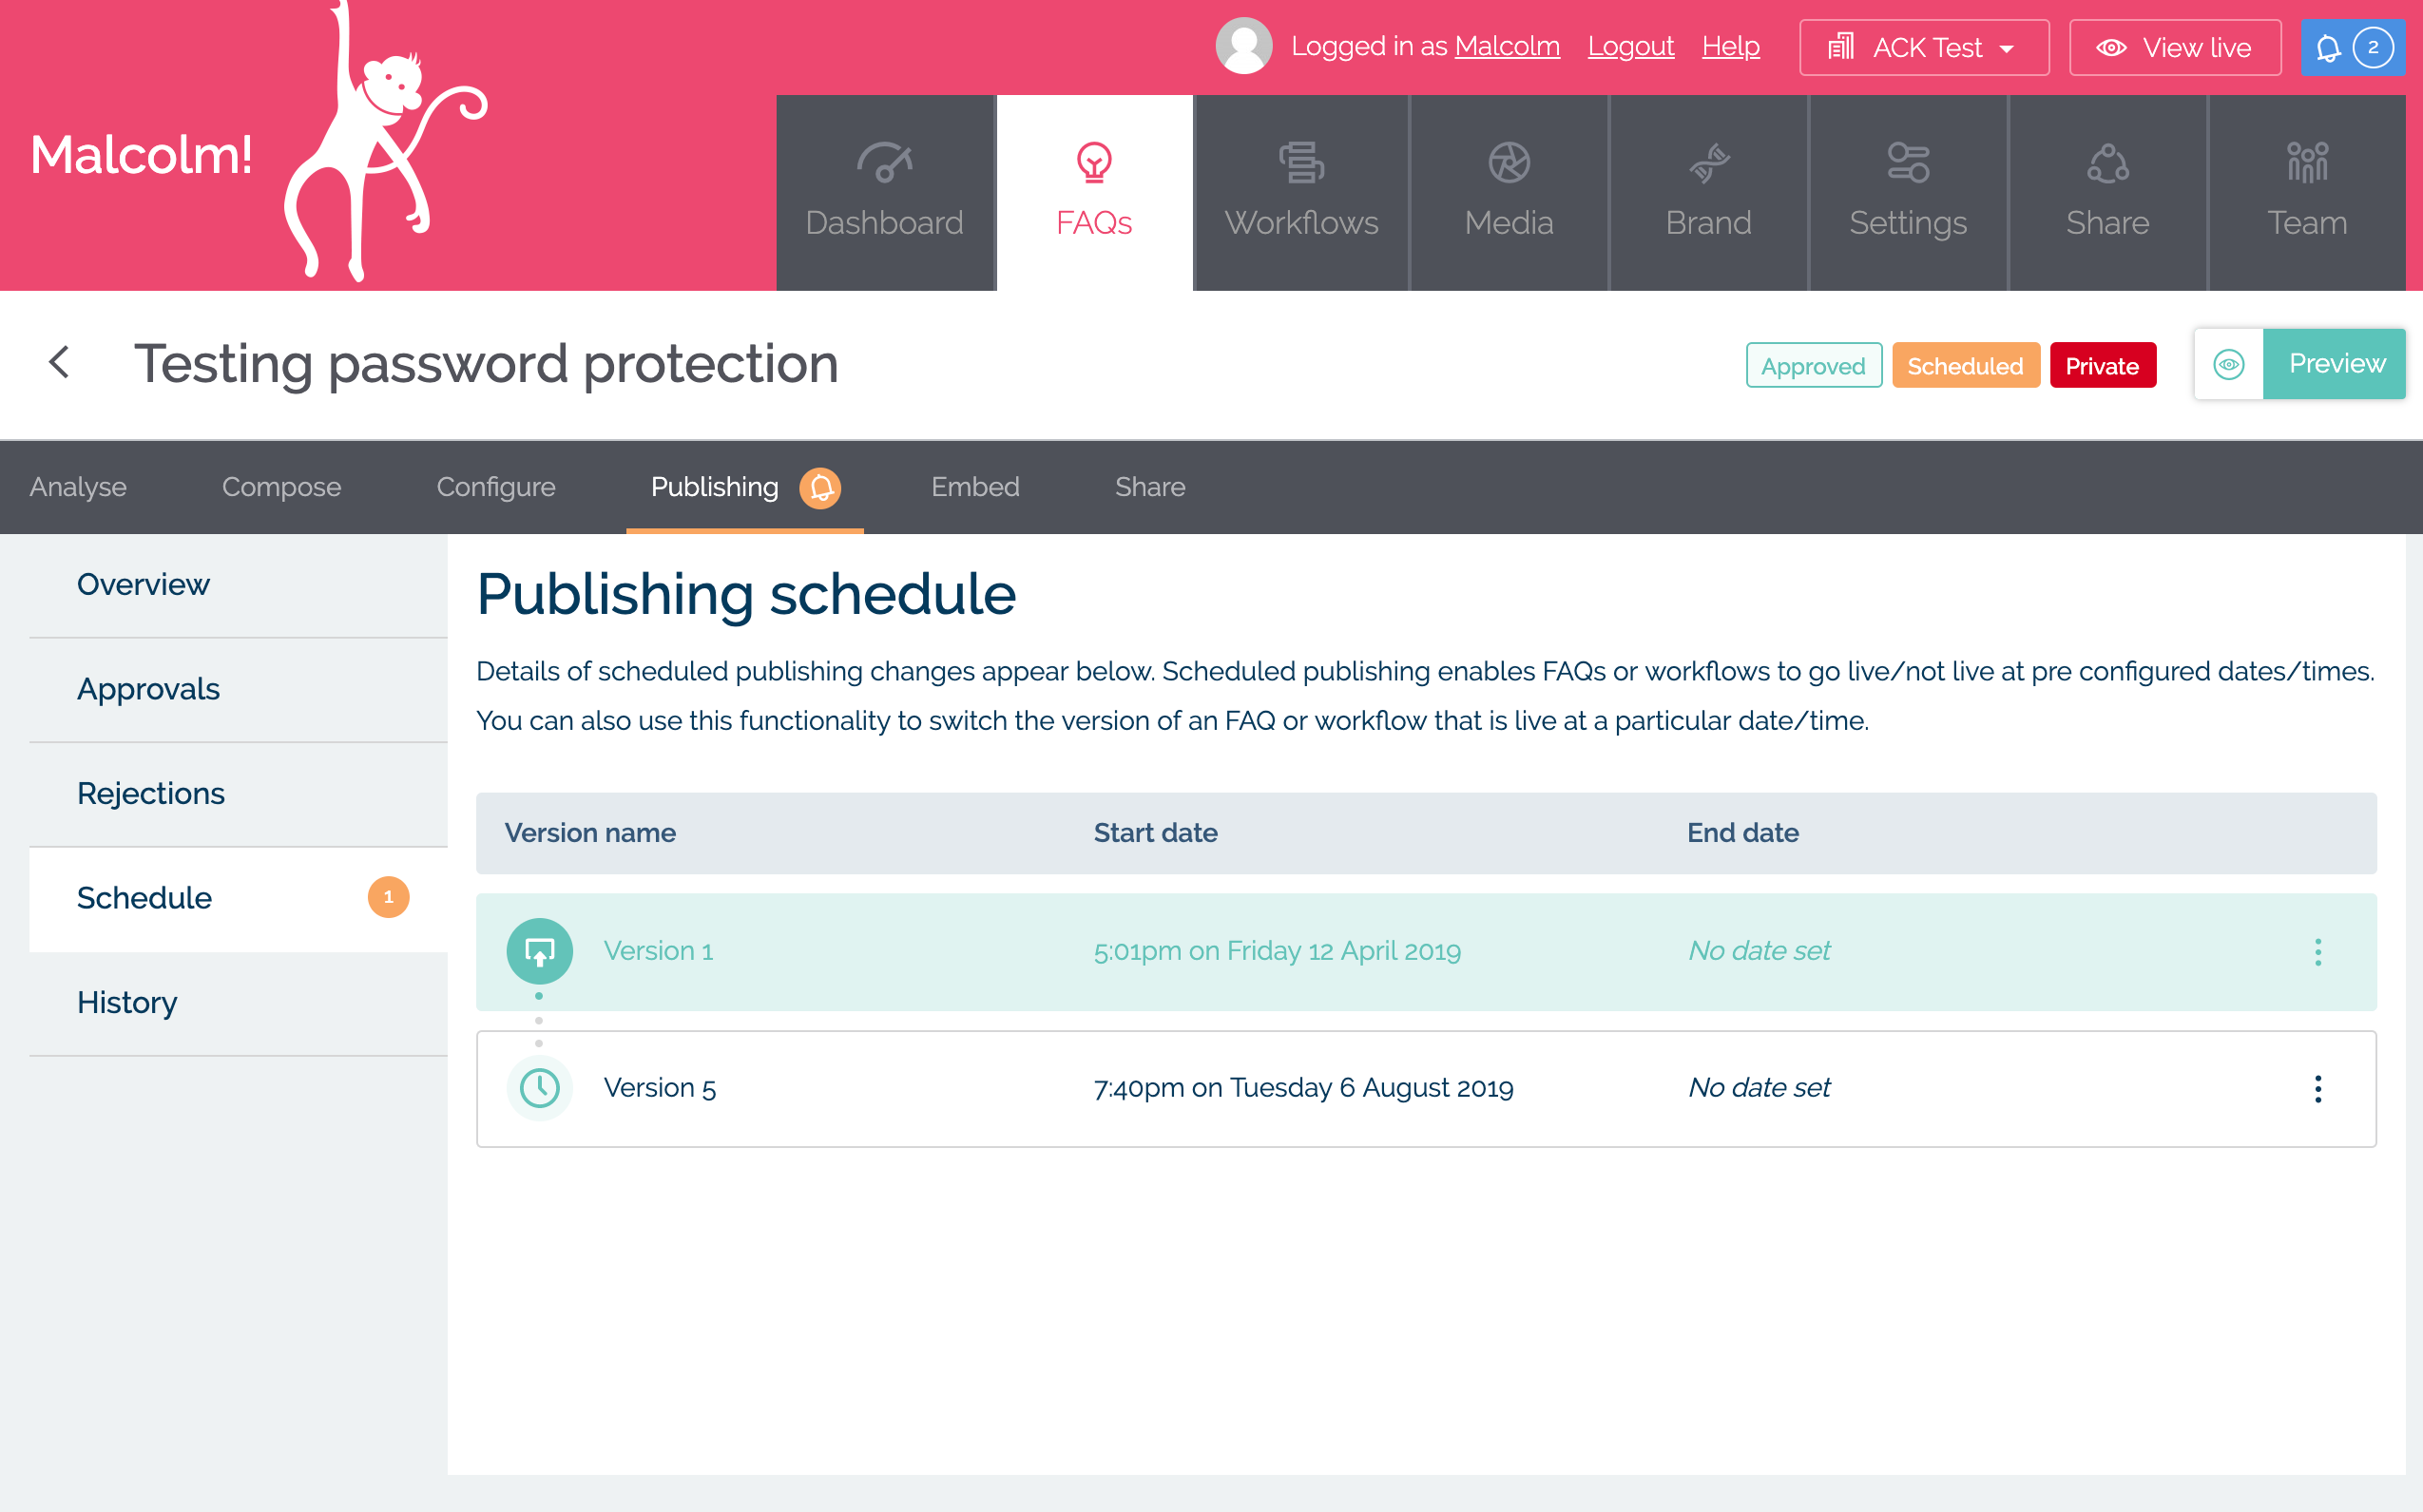 Scheduled Publishing in MyMalcolm